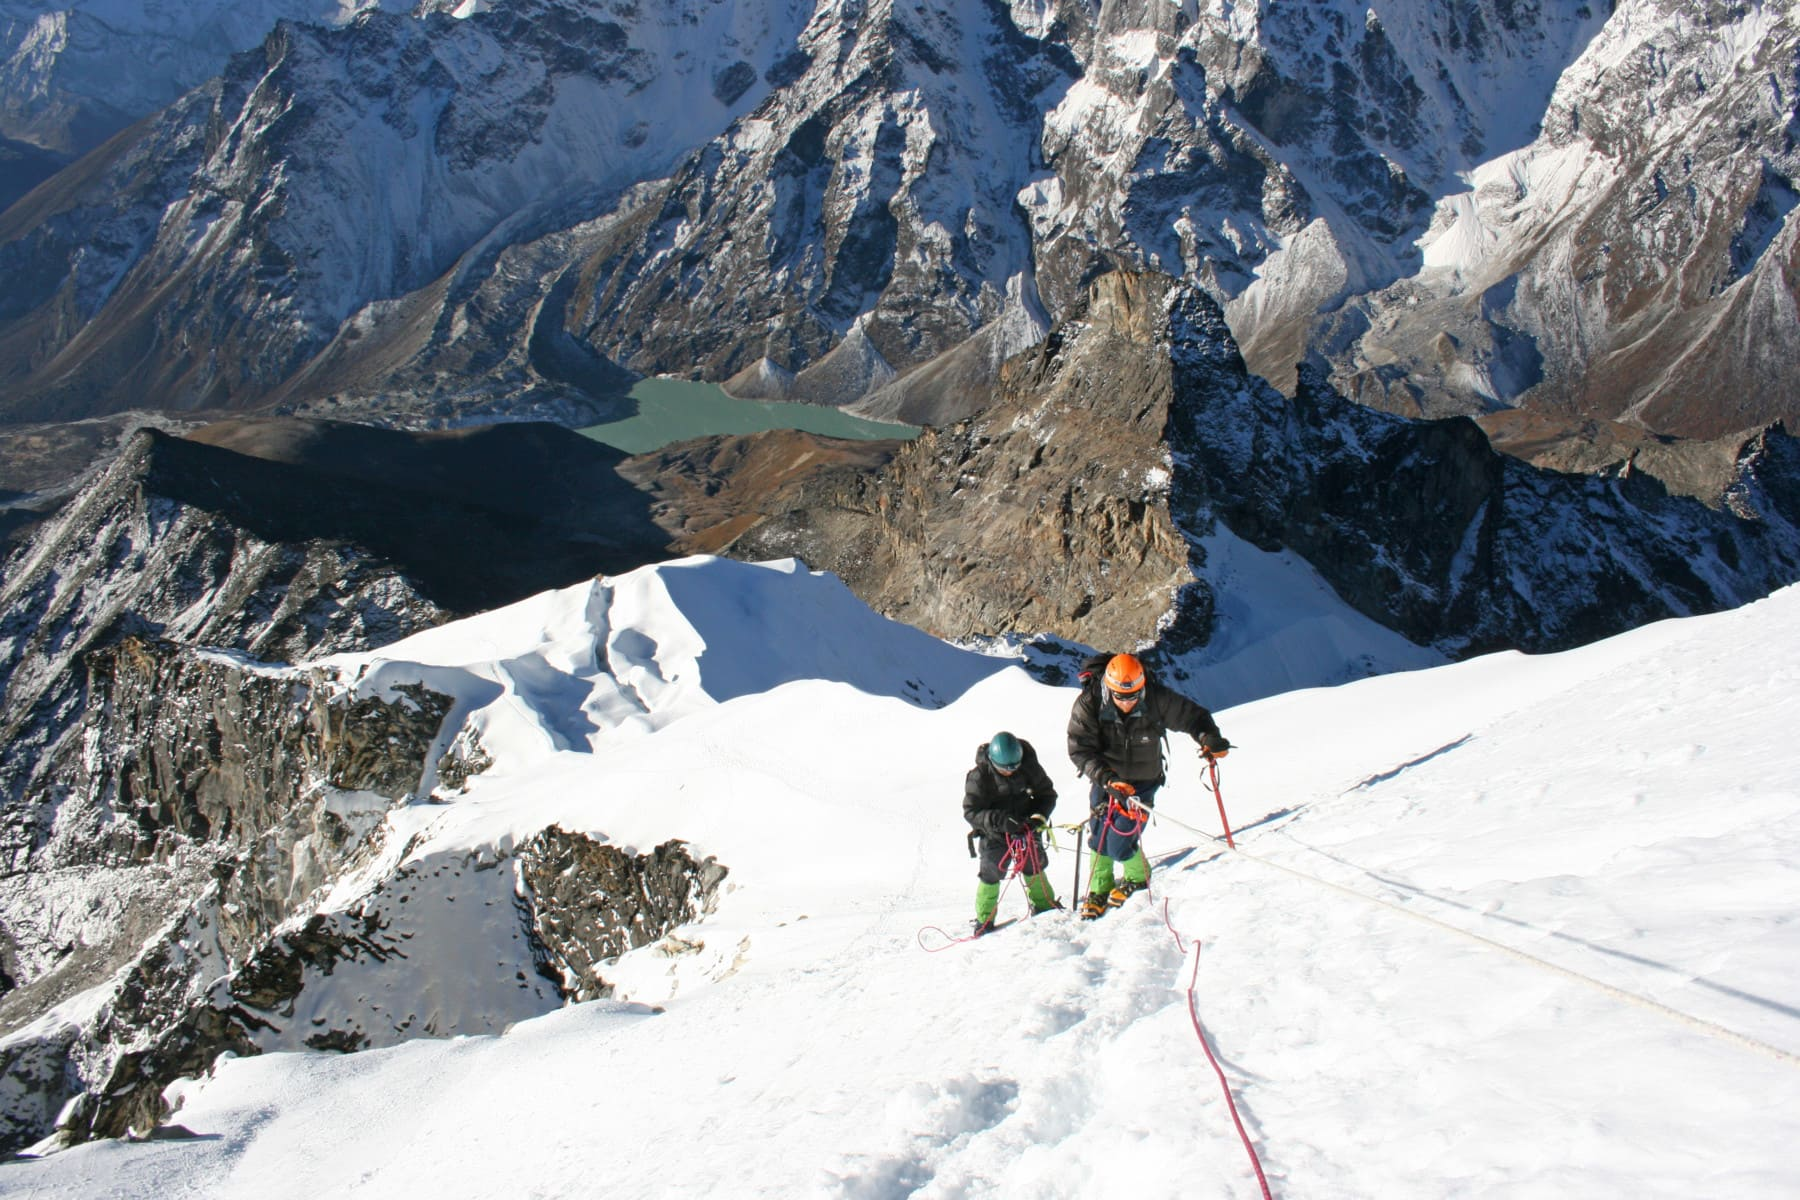 Nepal Trekking Guide for the Himalayan Expedition. Travel with a guide to Nepal to climb mountains.